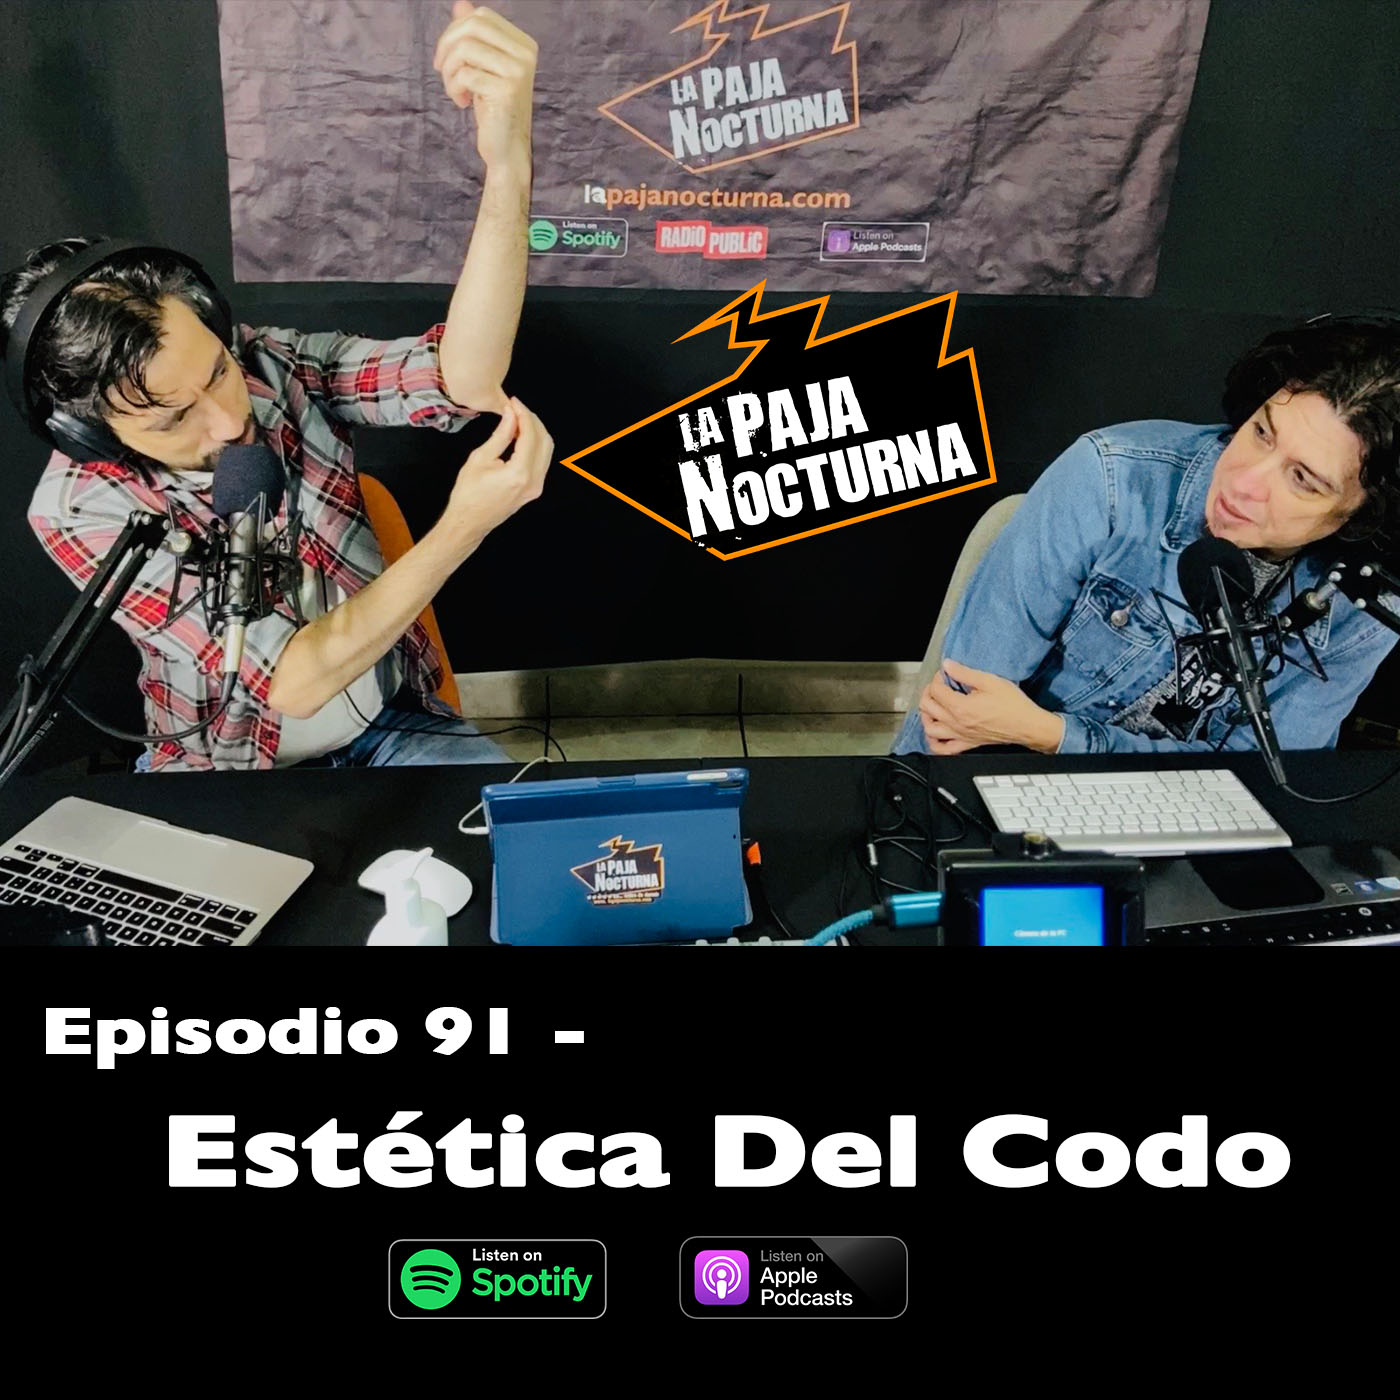 La paja nocturna podcast Episodio 91